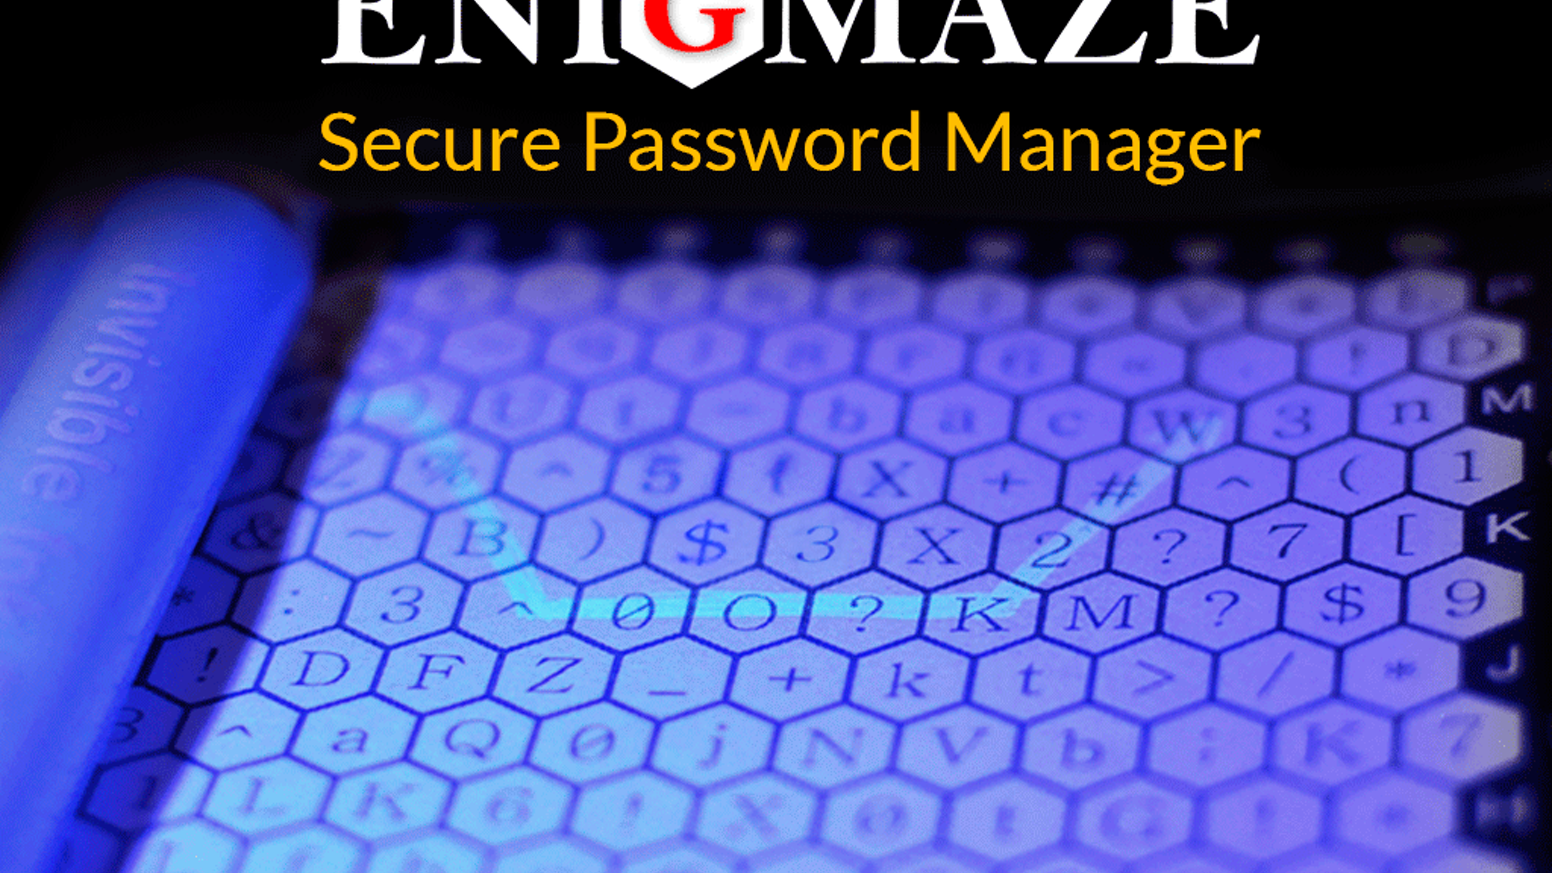 Enigmaze is a Premium Hardcover Notebook Specifically Designed to Quickly Create and SECURELY Store Strong Passwords.